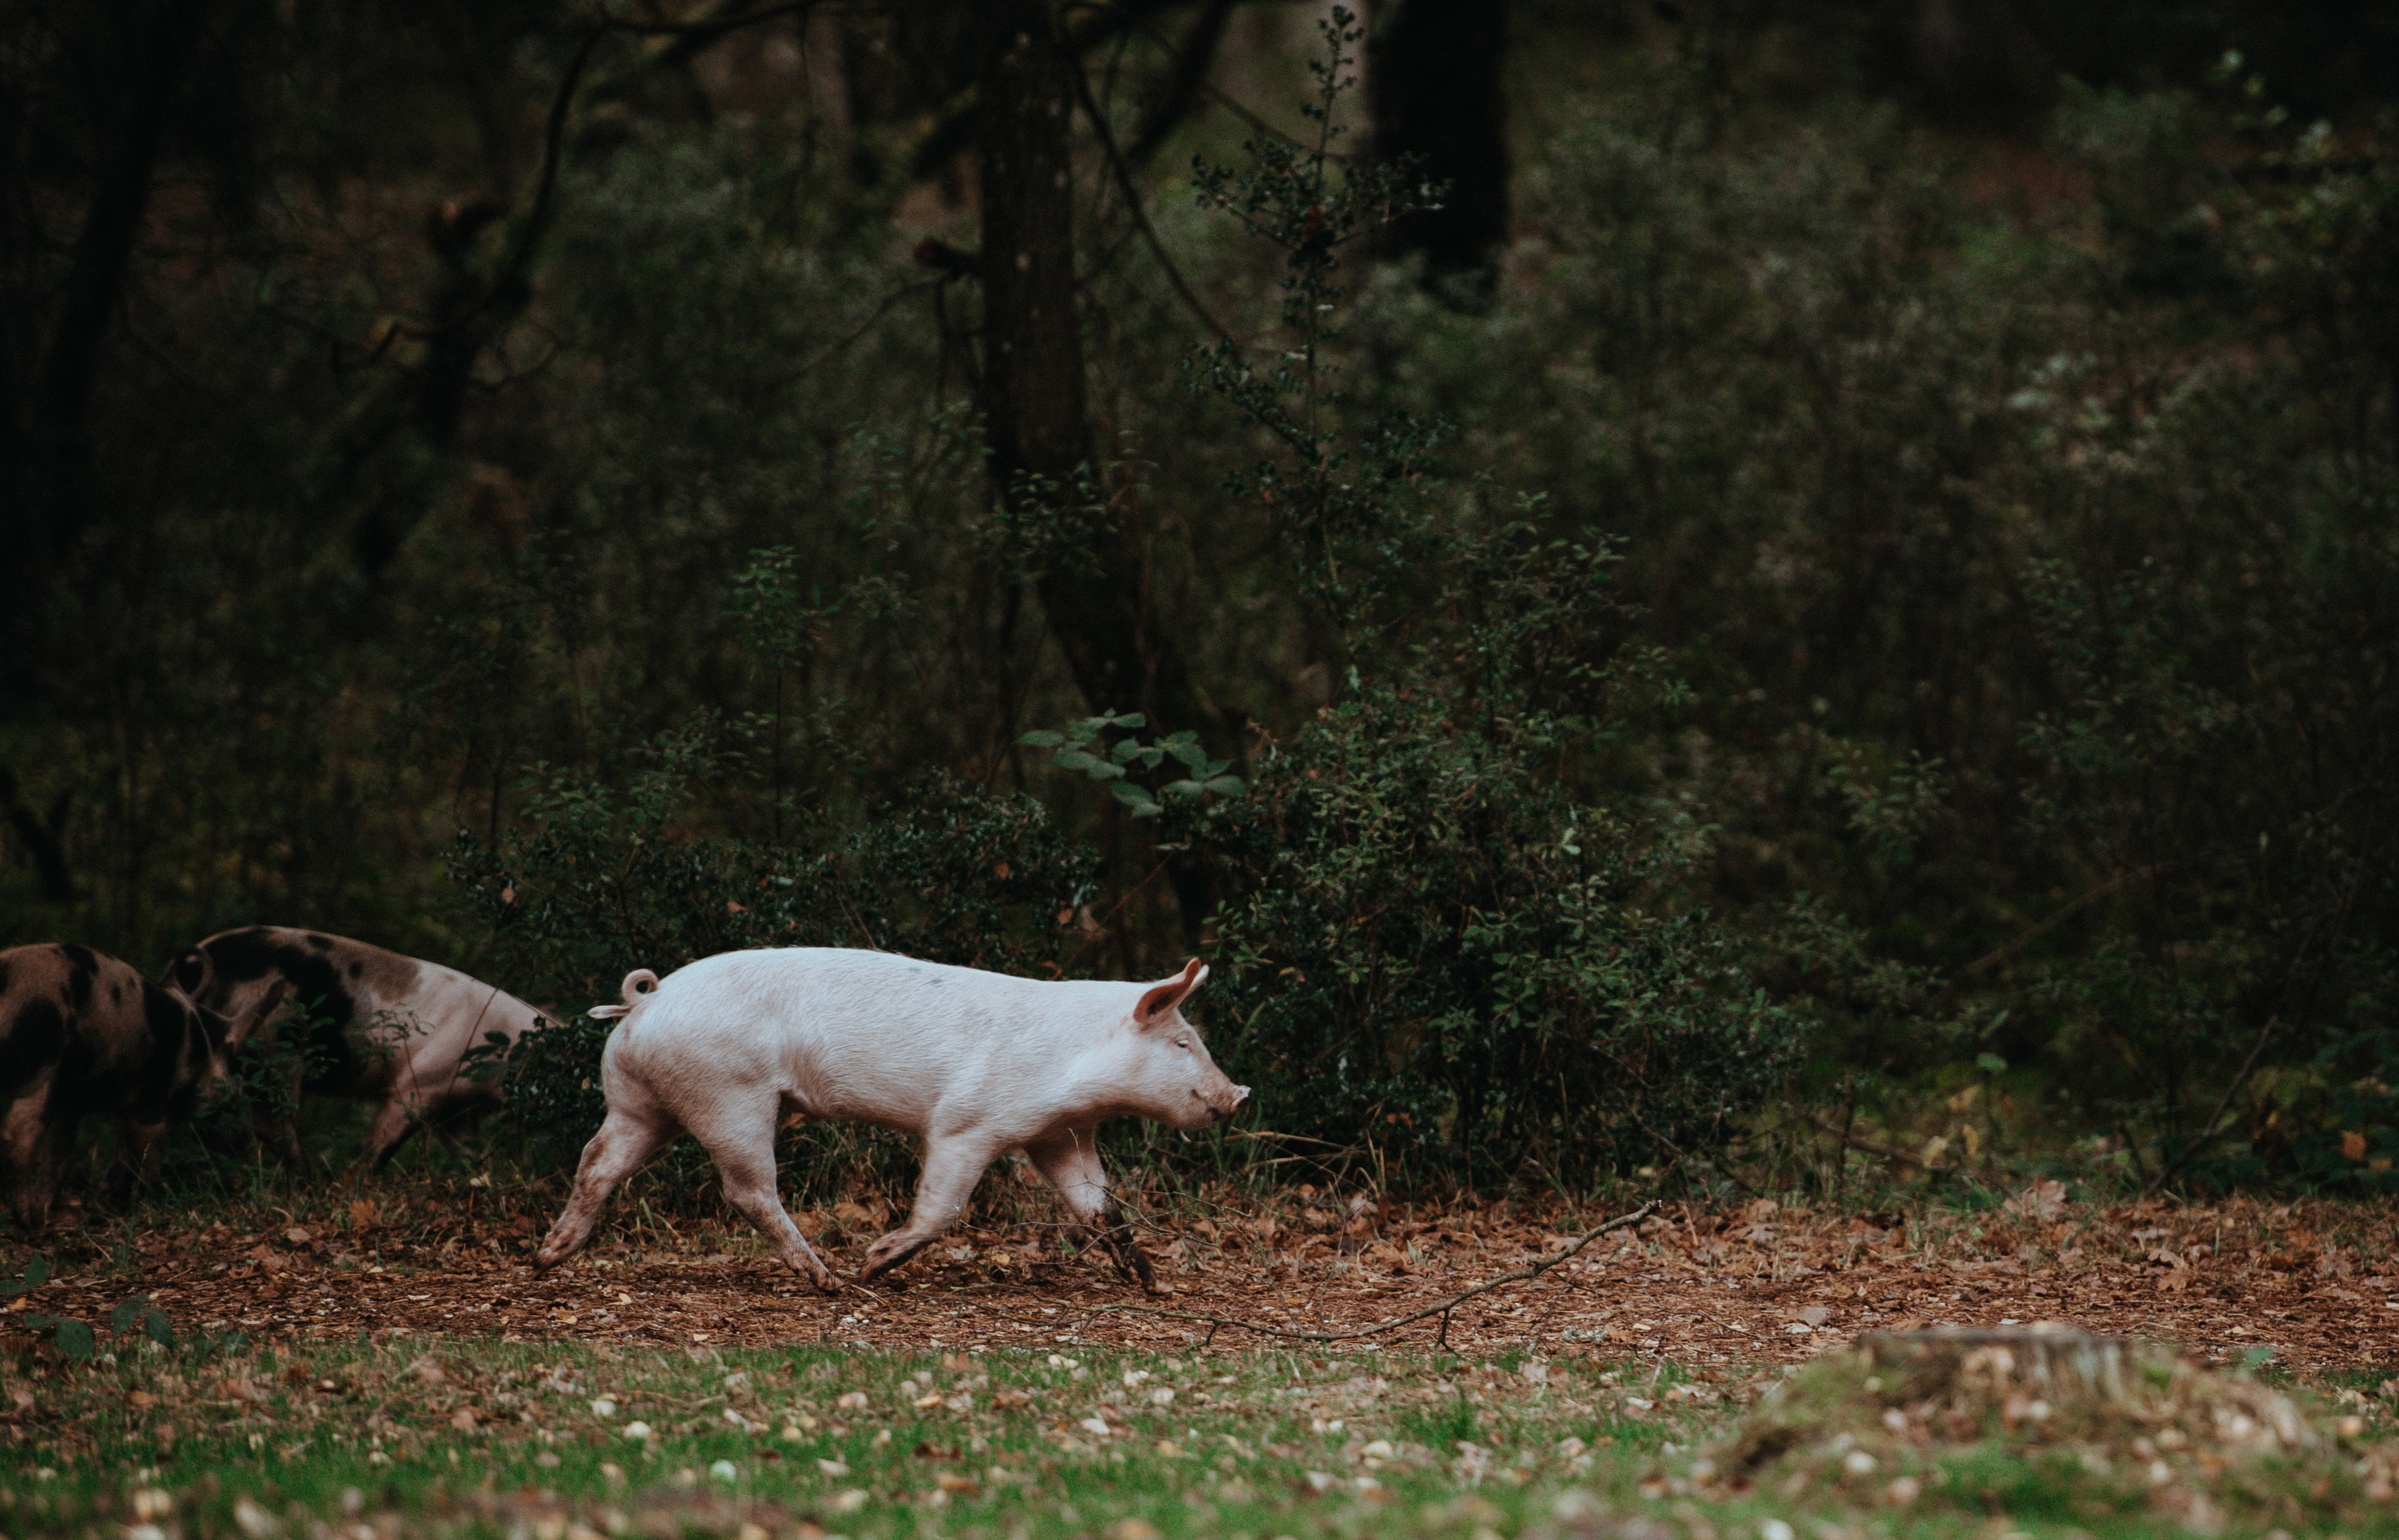 pigs wandering on grass